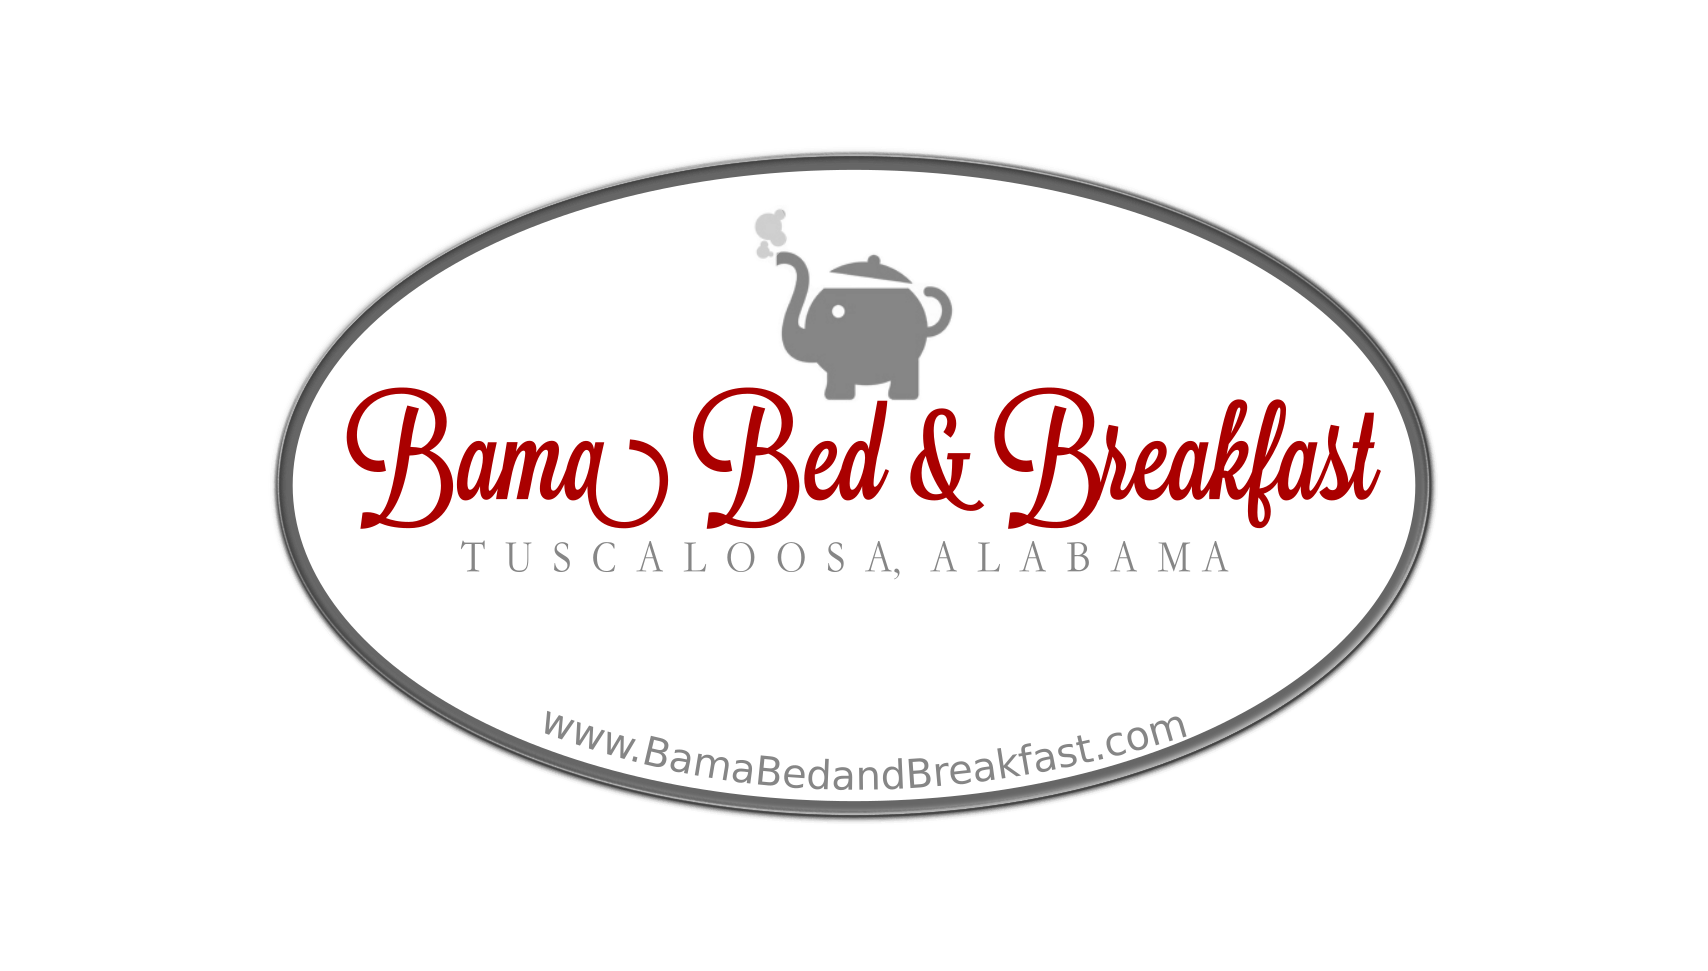 Bama Bed and Breakfast Campus Location